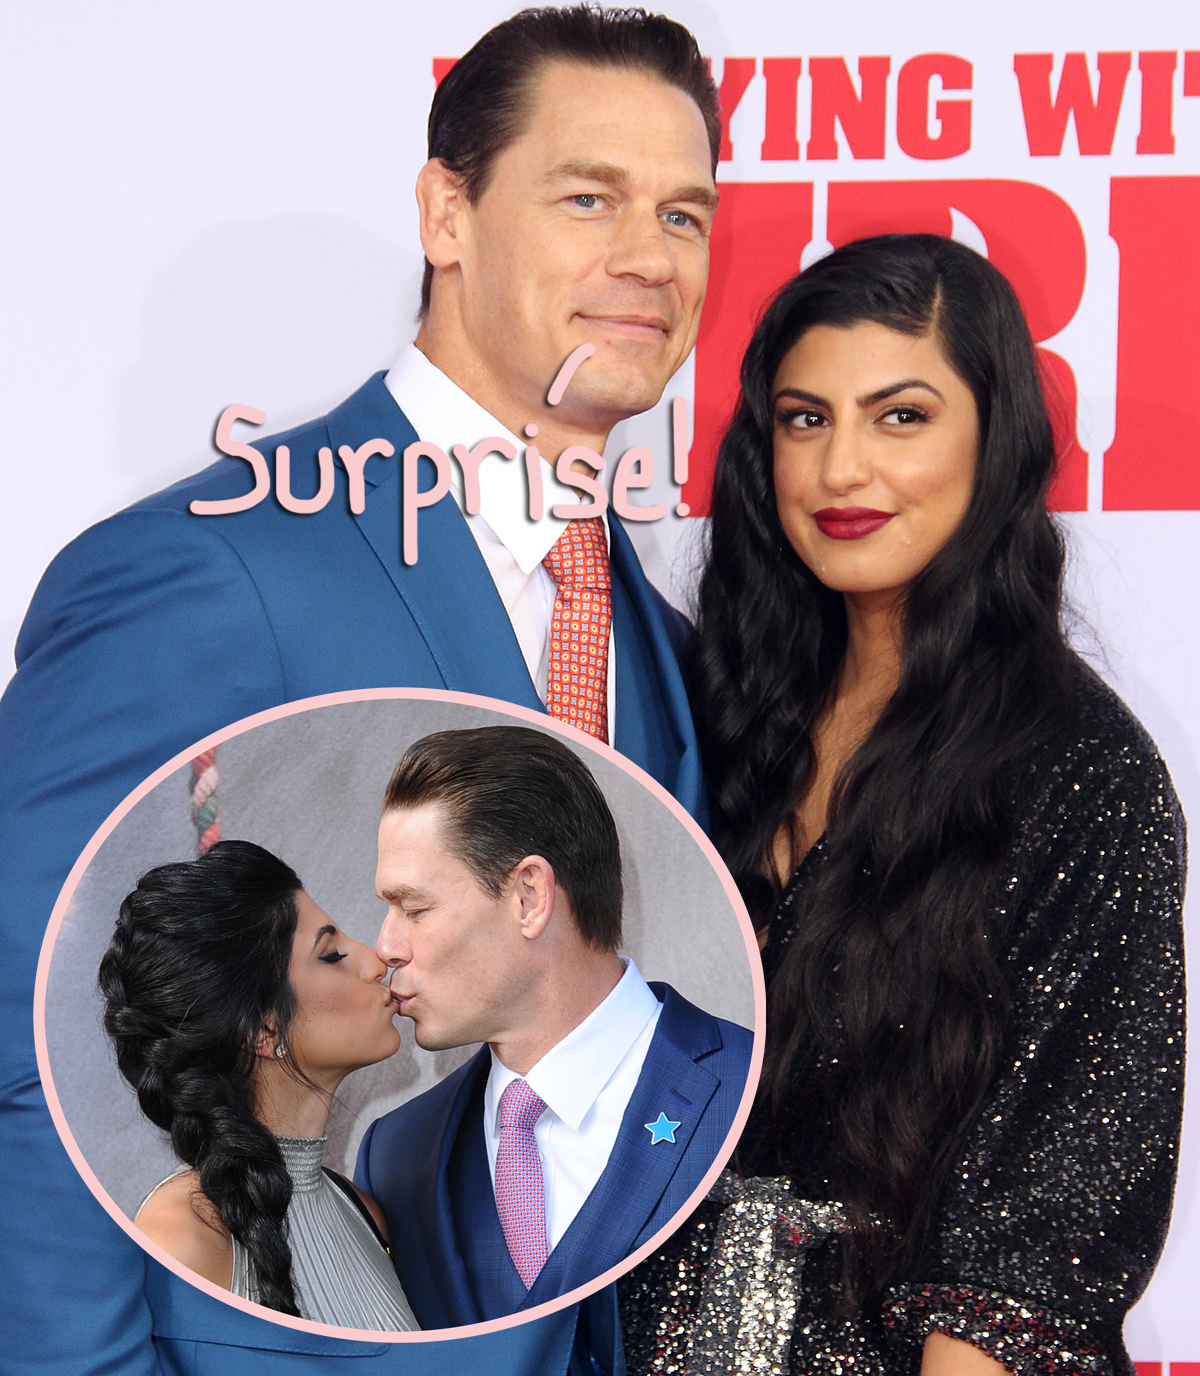 John Cena Secretly Got Married Perez Hilton Here's everything we know about shay shariatzadeh. john cena secretly got married perez